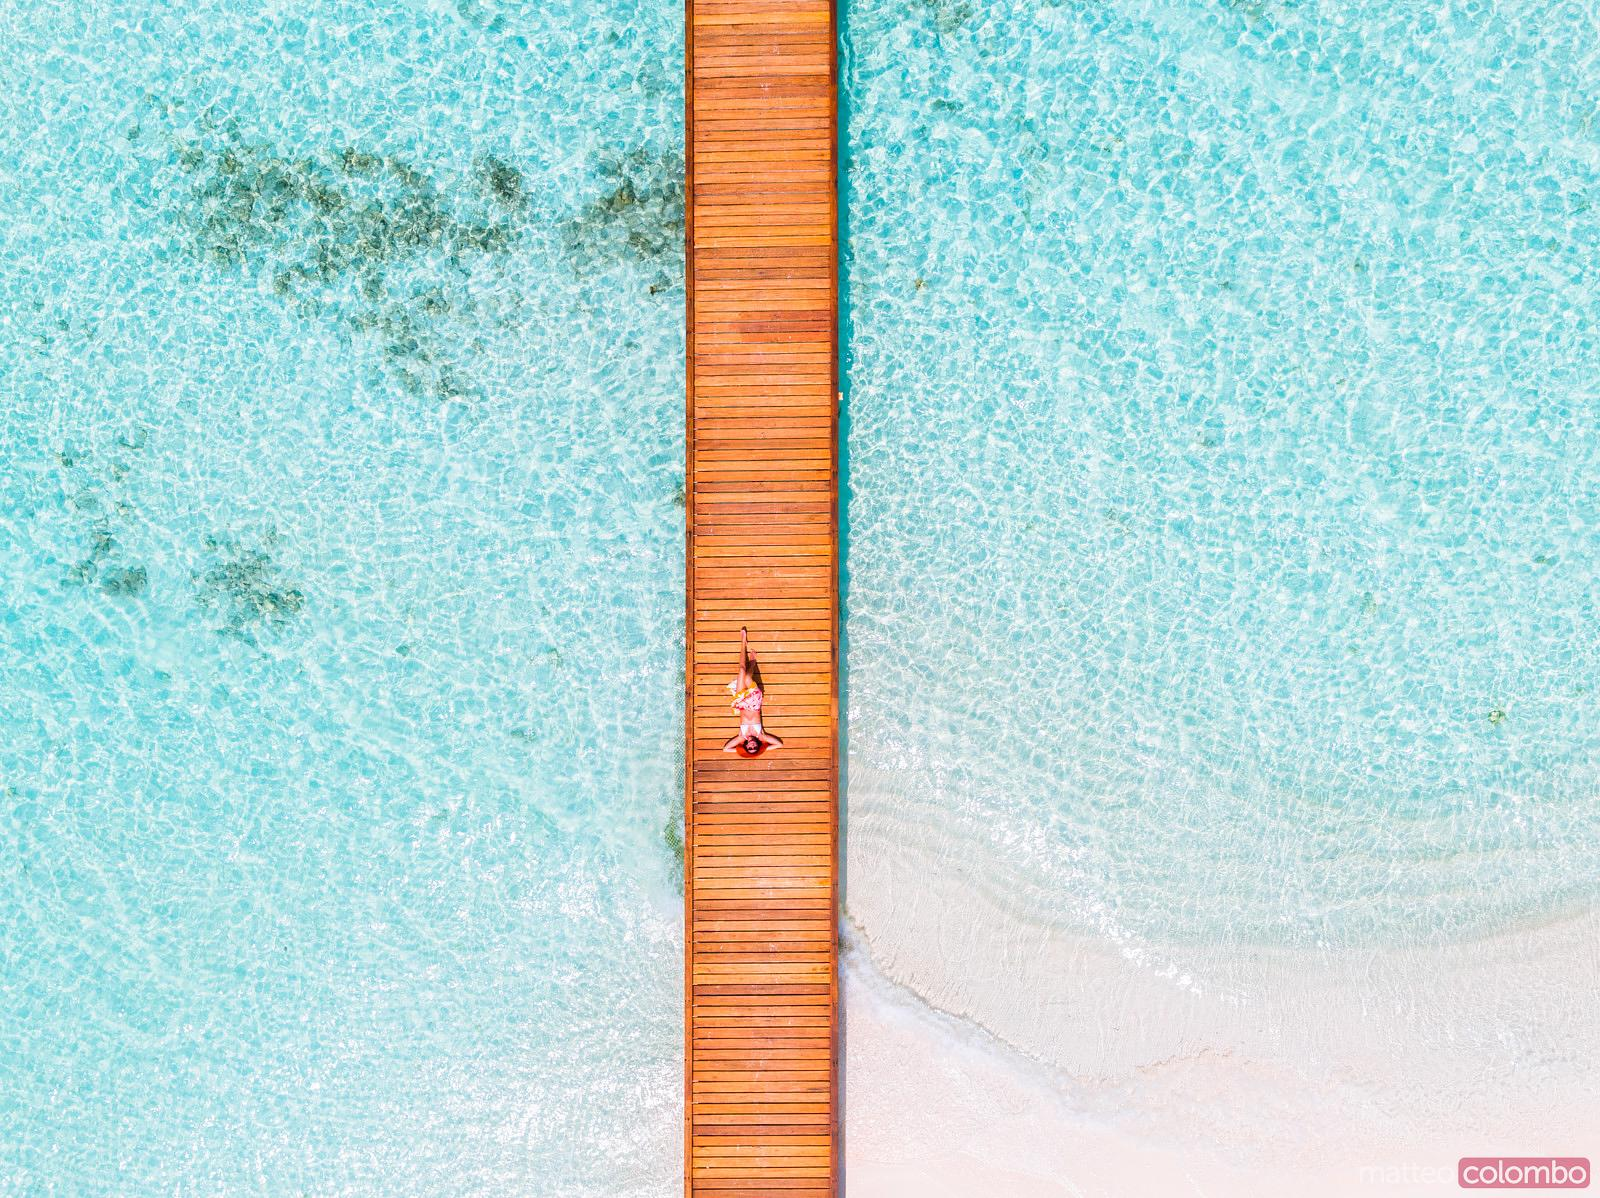 Overhead view of woman lying down on jetty, Maldives